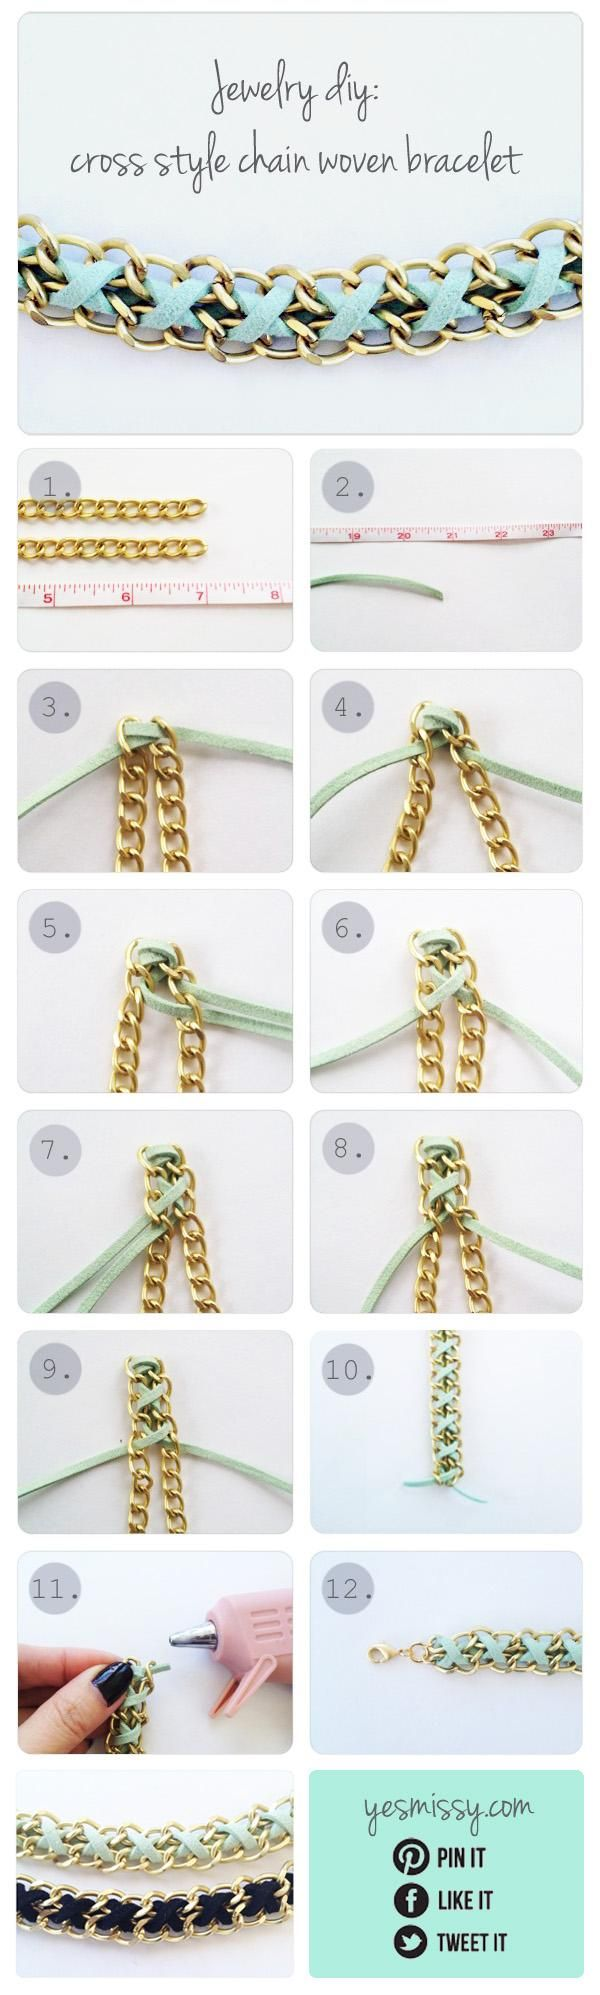 DIY Tutorial: DIY Friendship Bracelet / DIY Bracelet: Cross Style Chain Woven Bracelet - BeadCord